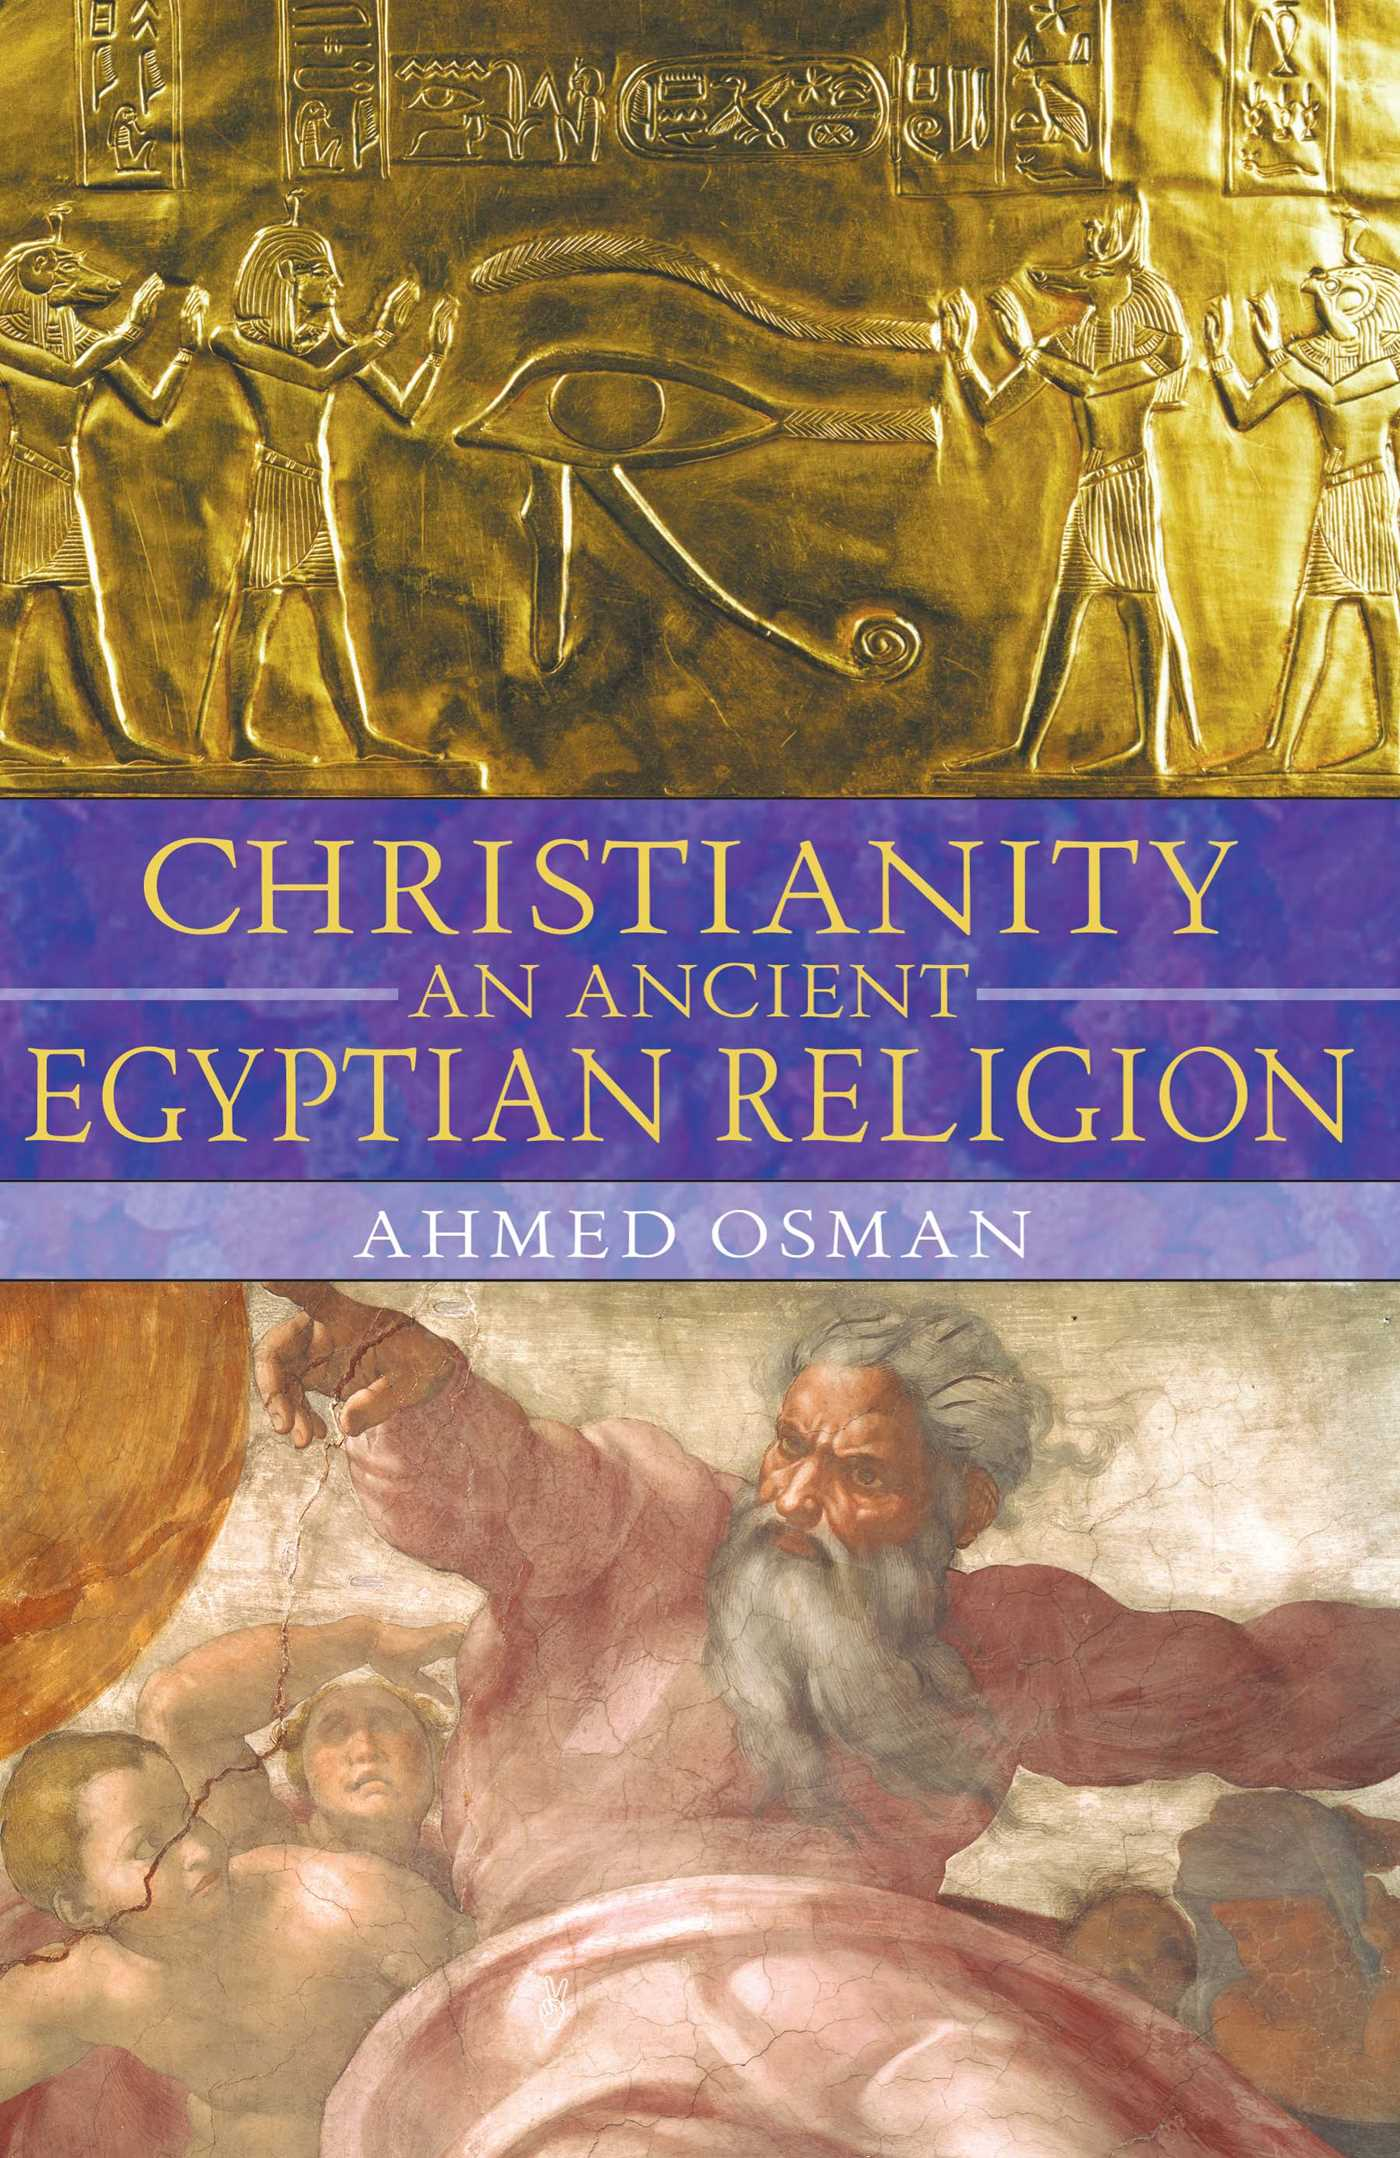 Christianity an ancient egyptian religion 9781591430469 hr